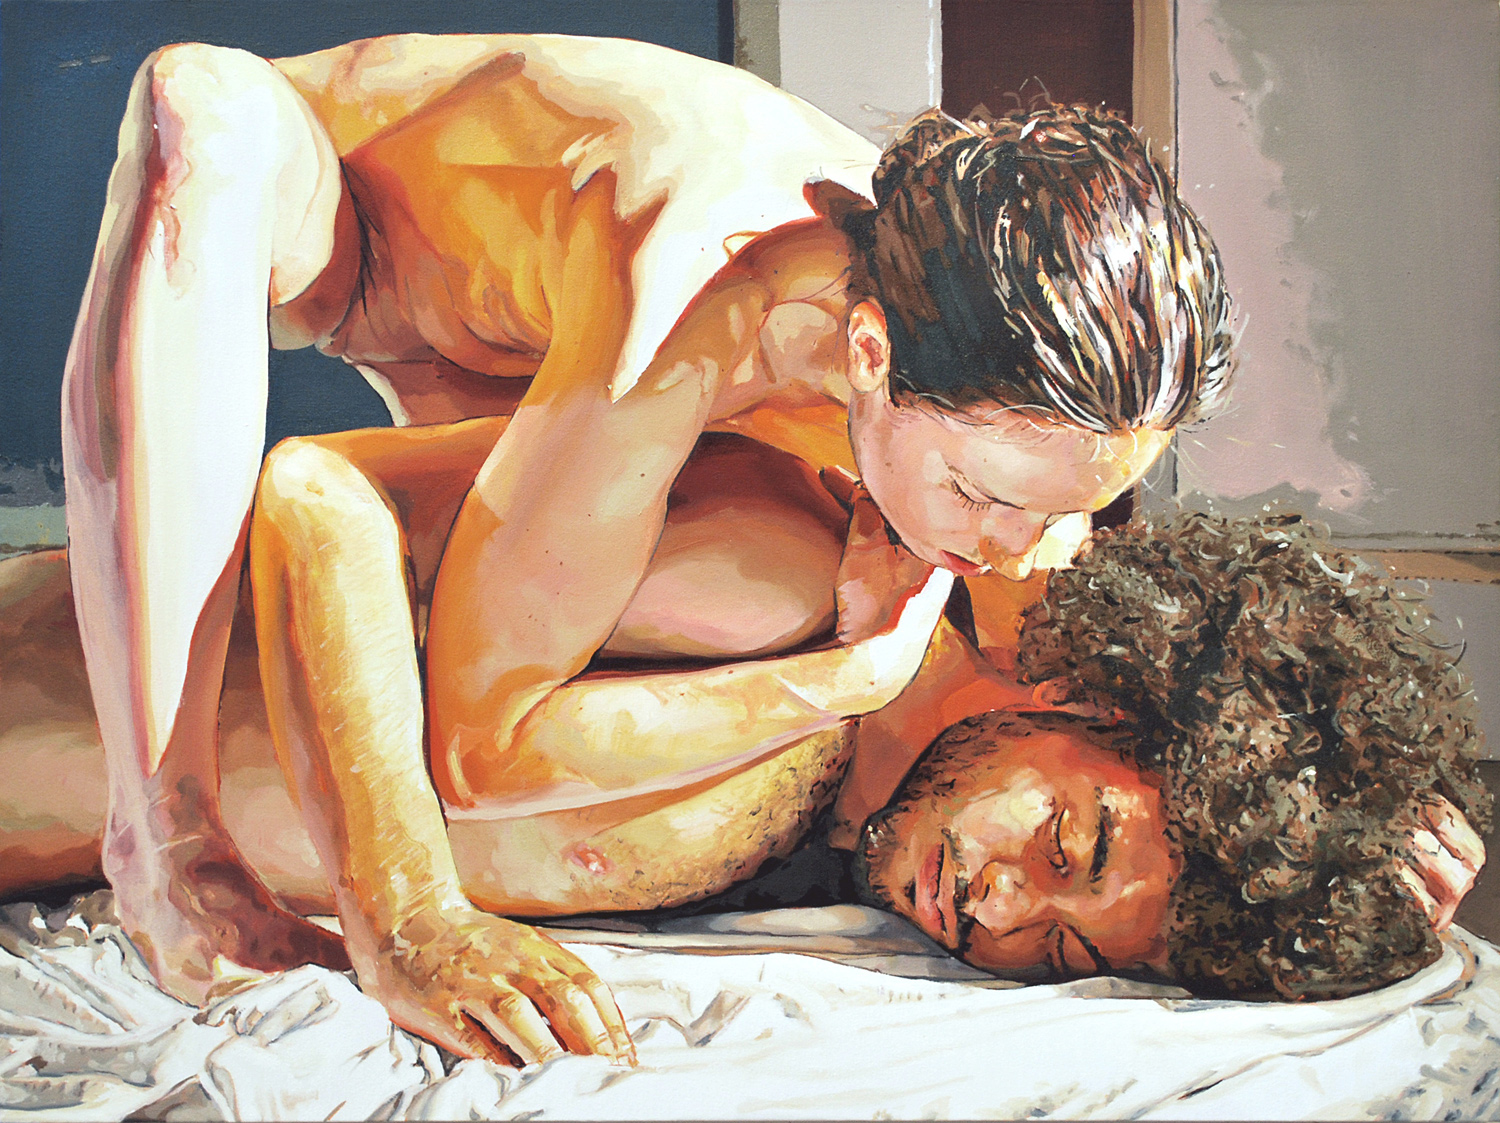 CASE, 2012, oil on linen, 30 x 40 inches (76.2 x 101.6 cm).